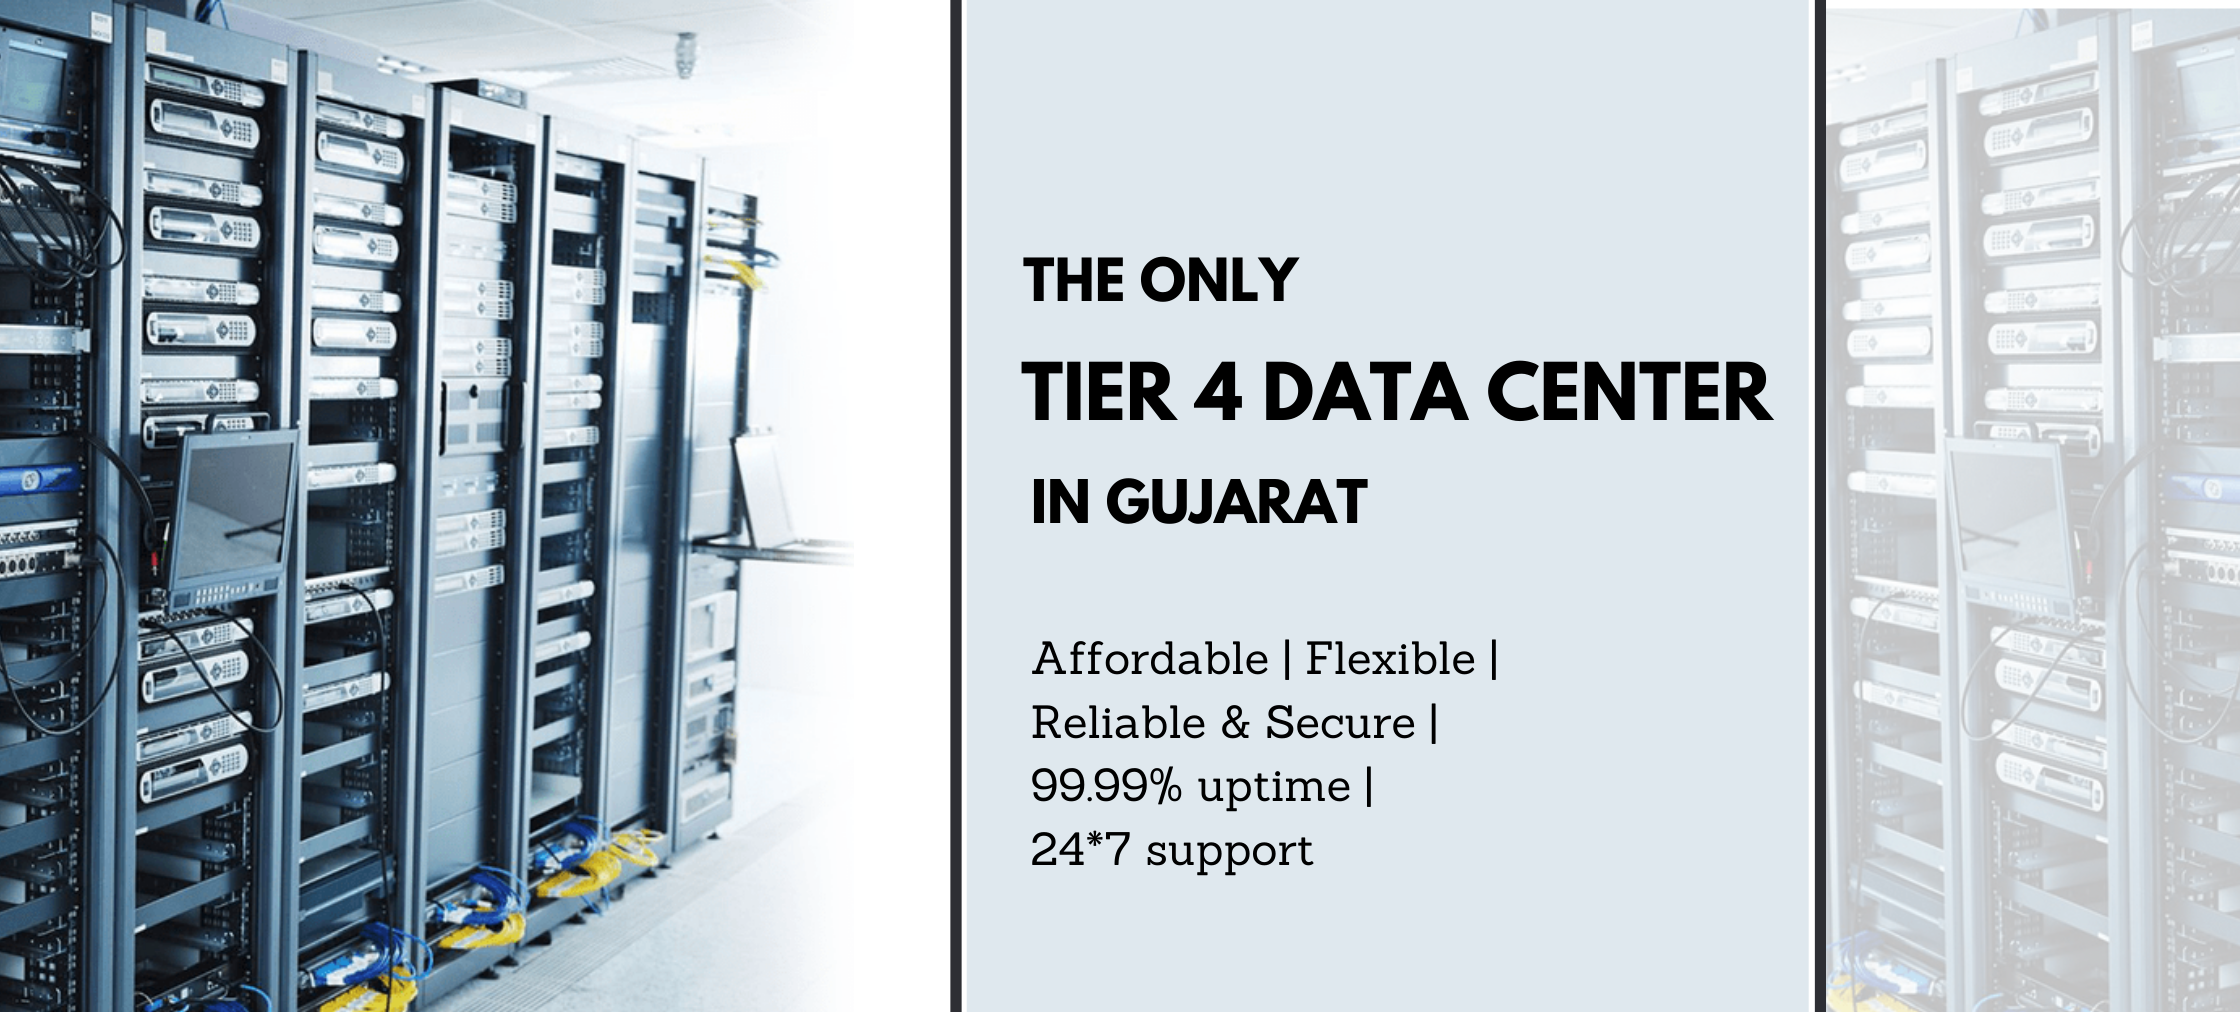 Significance of Tier 4 Data Center